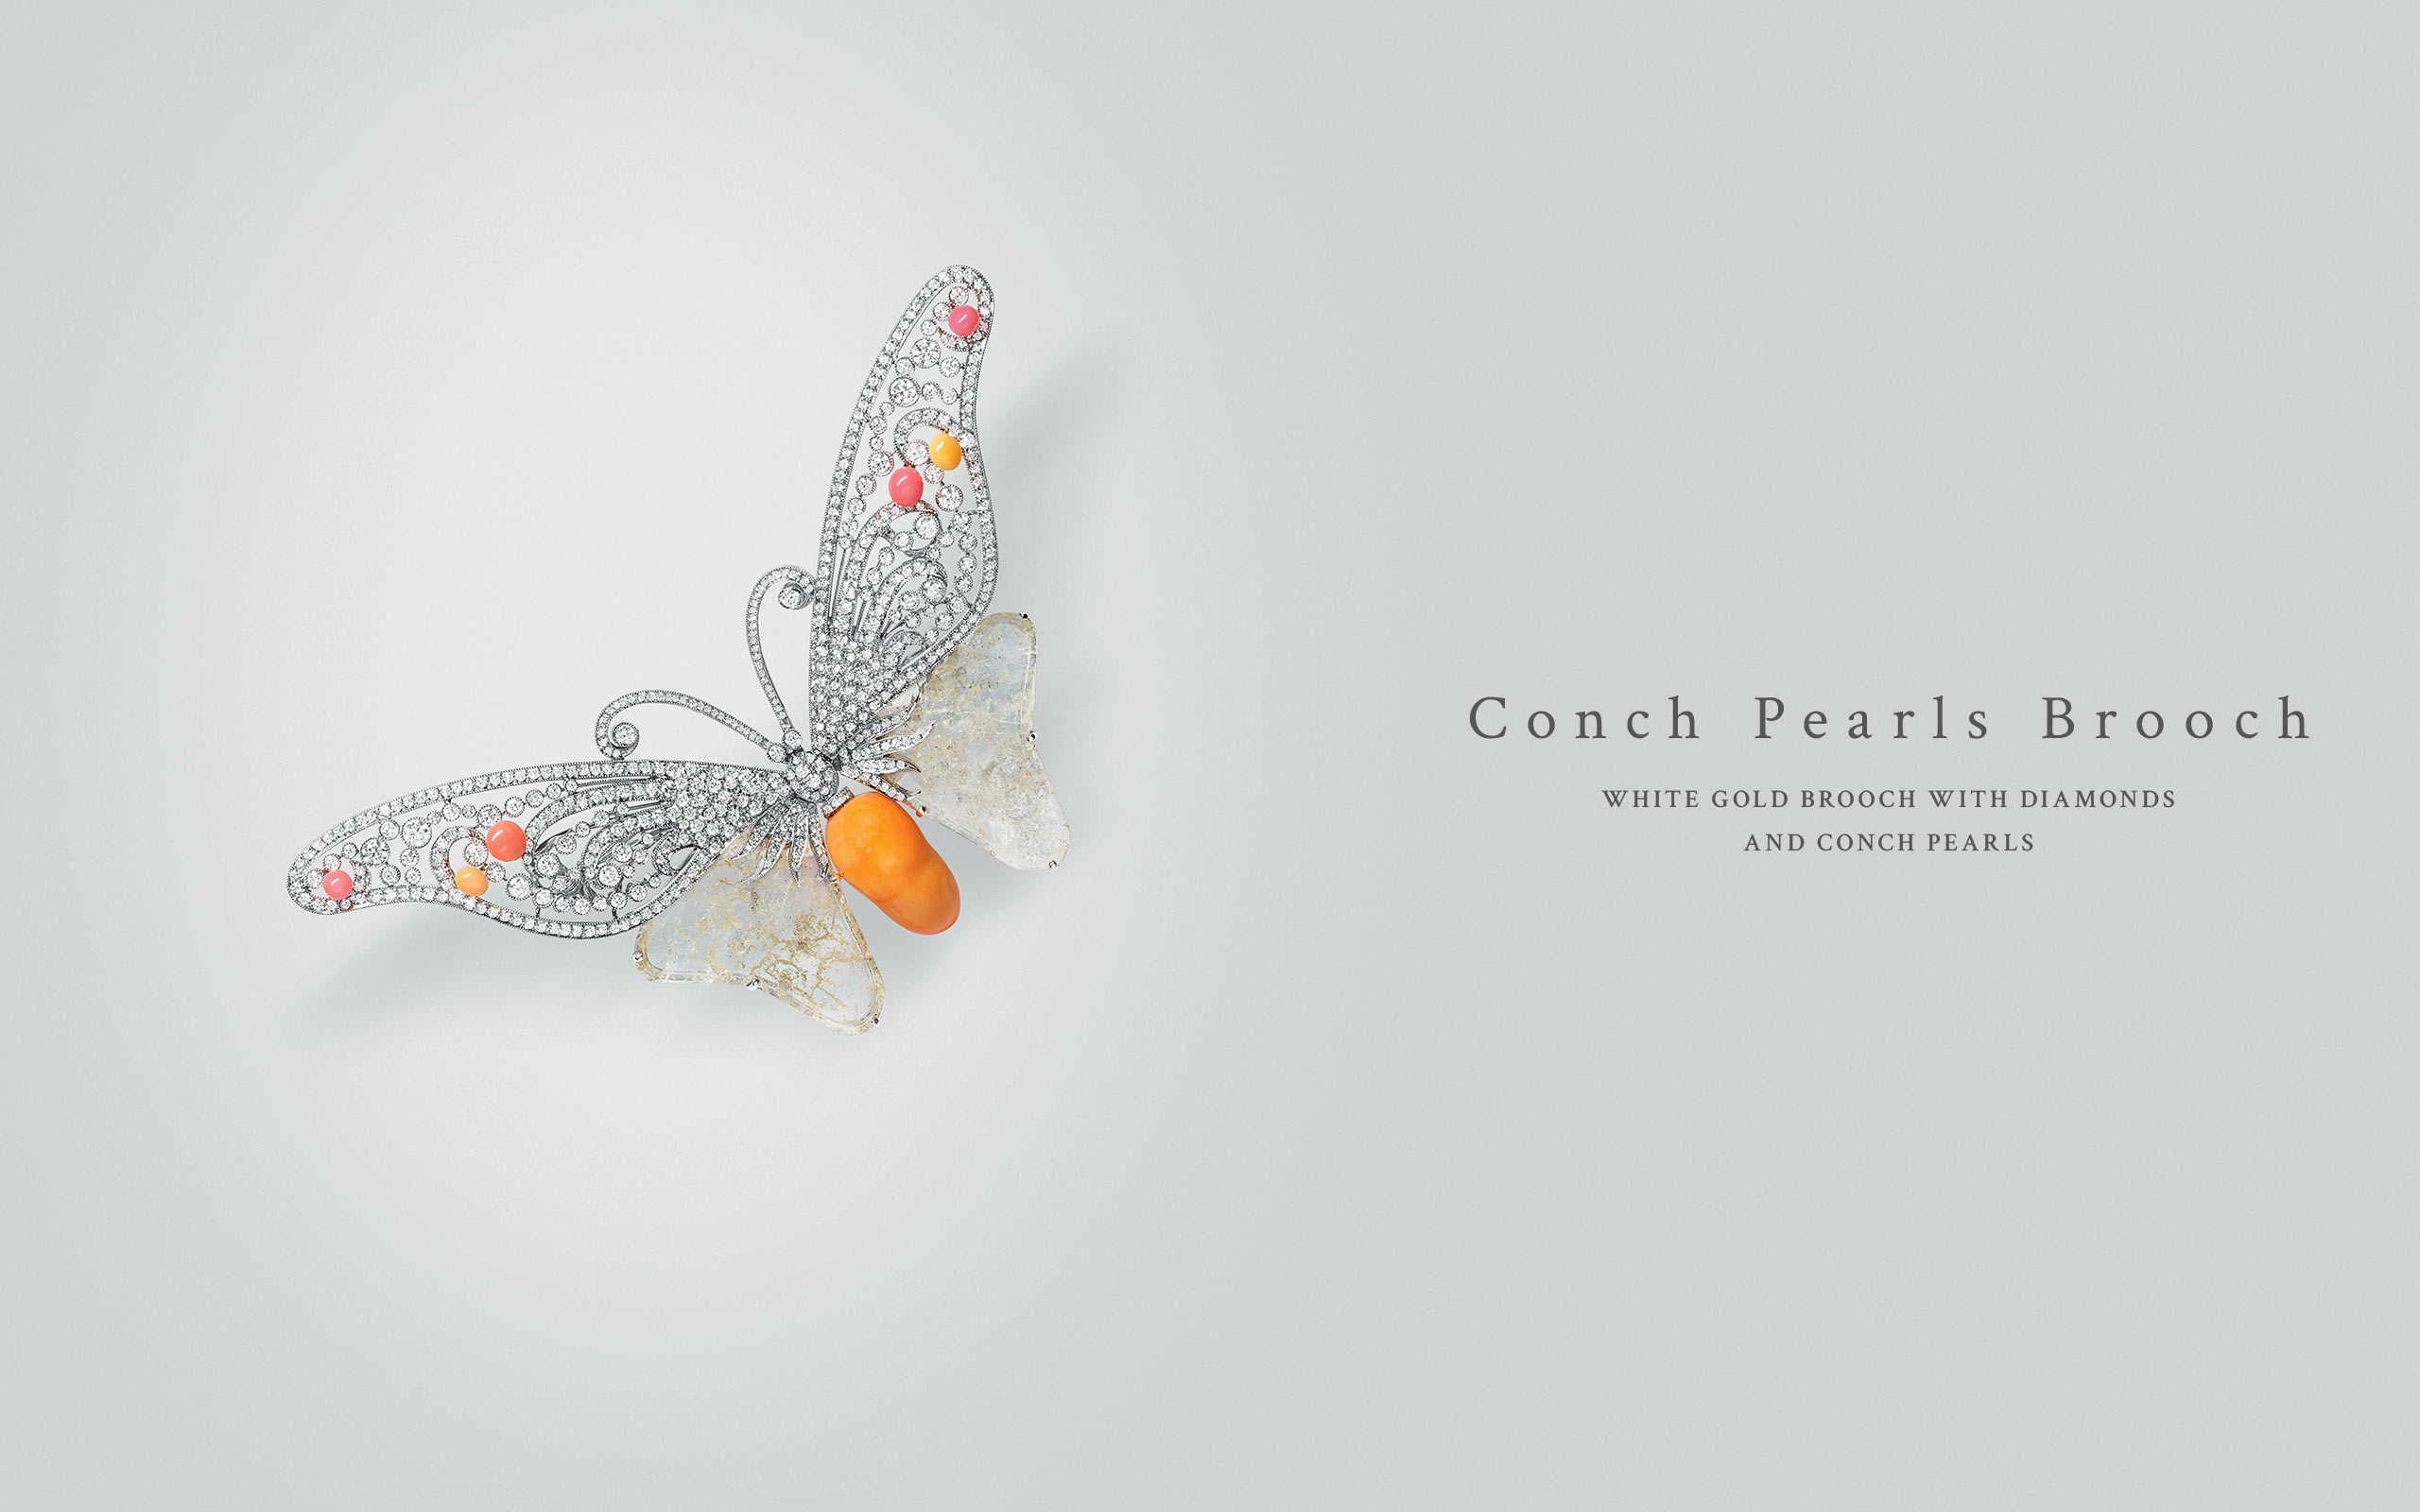 Conch Pearls Brooch 10 | Maria Gaspari